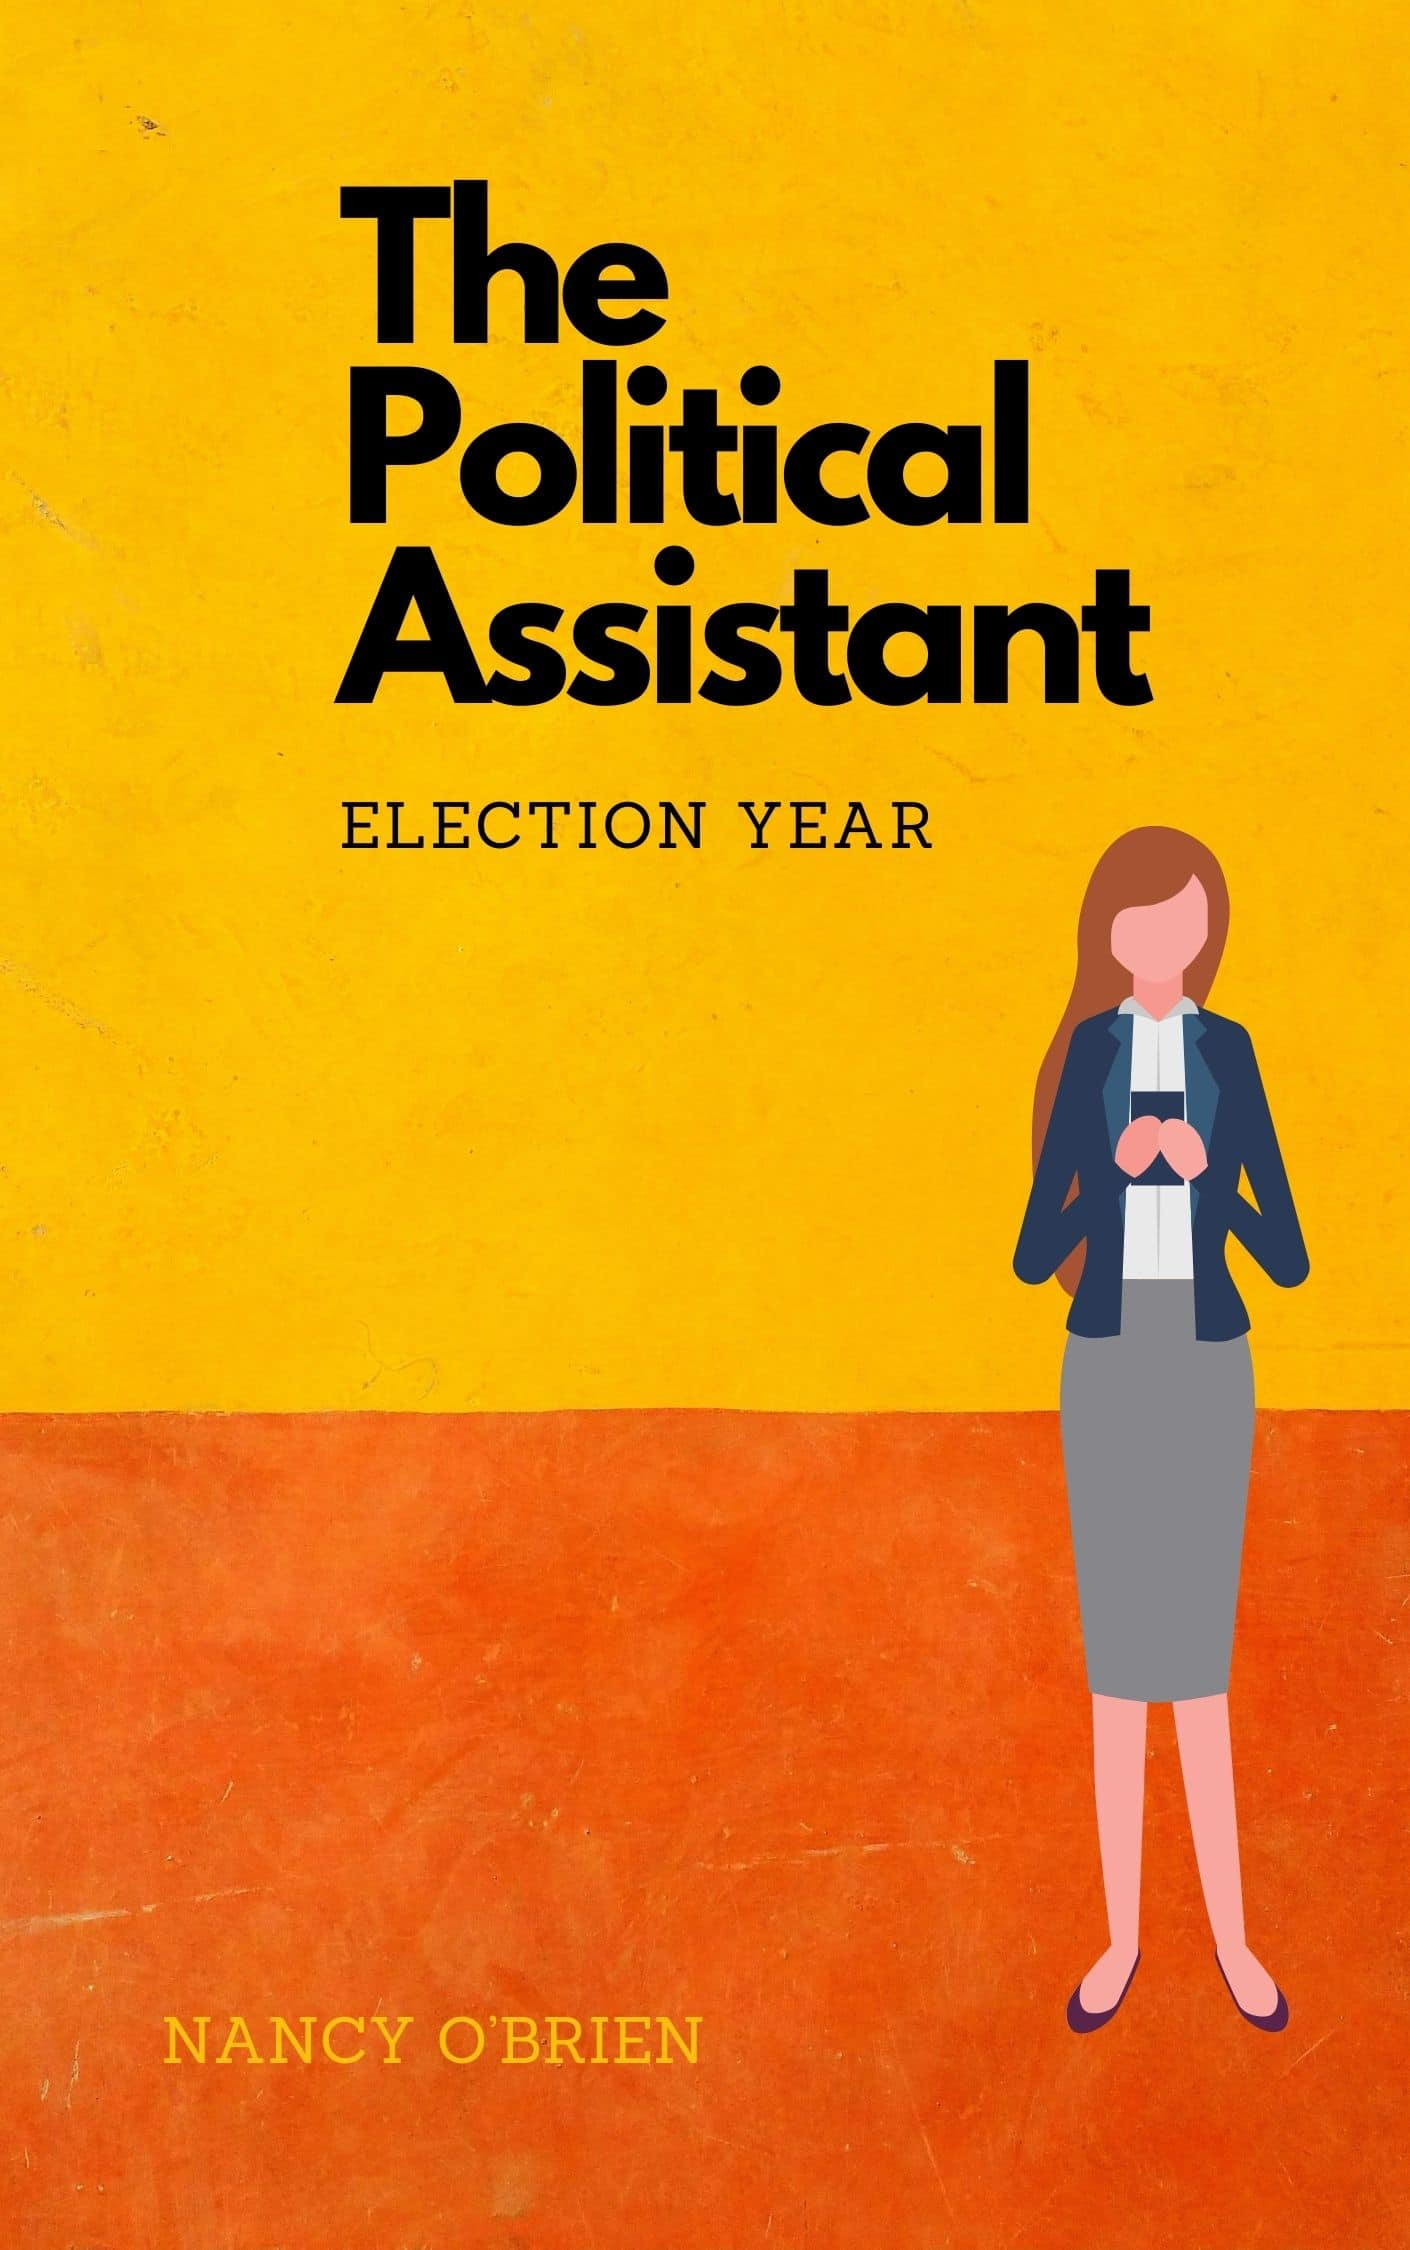 The Political Assistant - Election Year